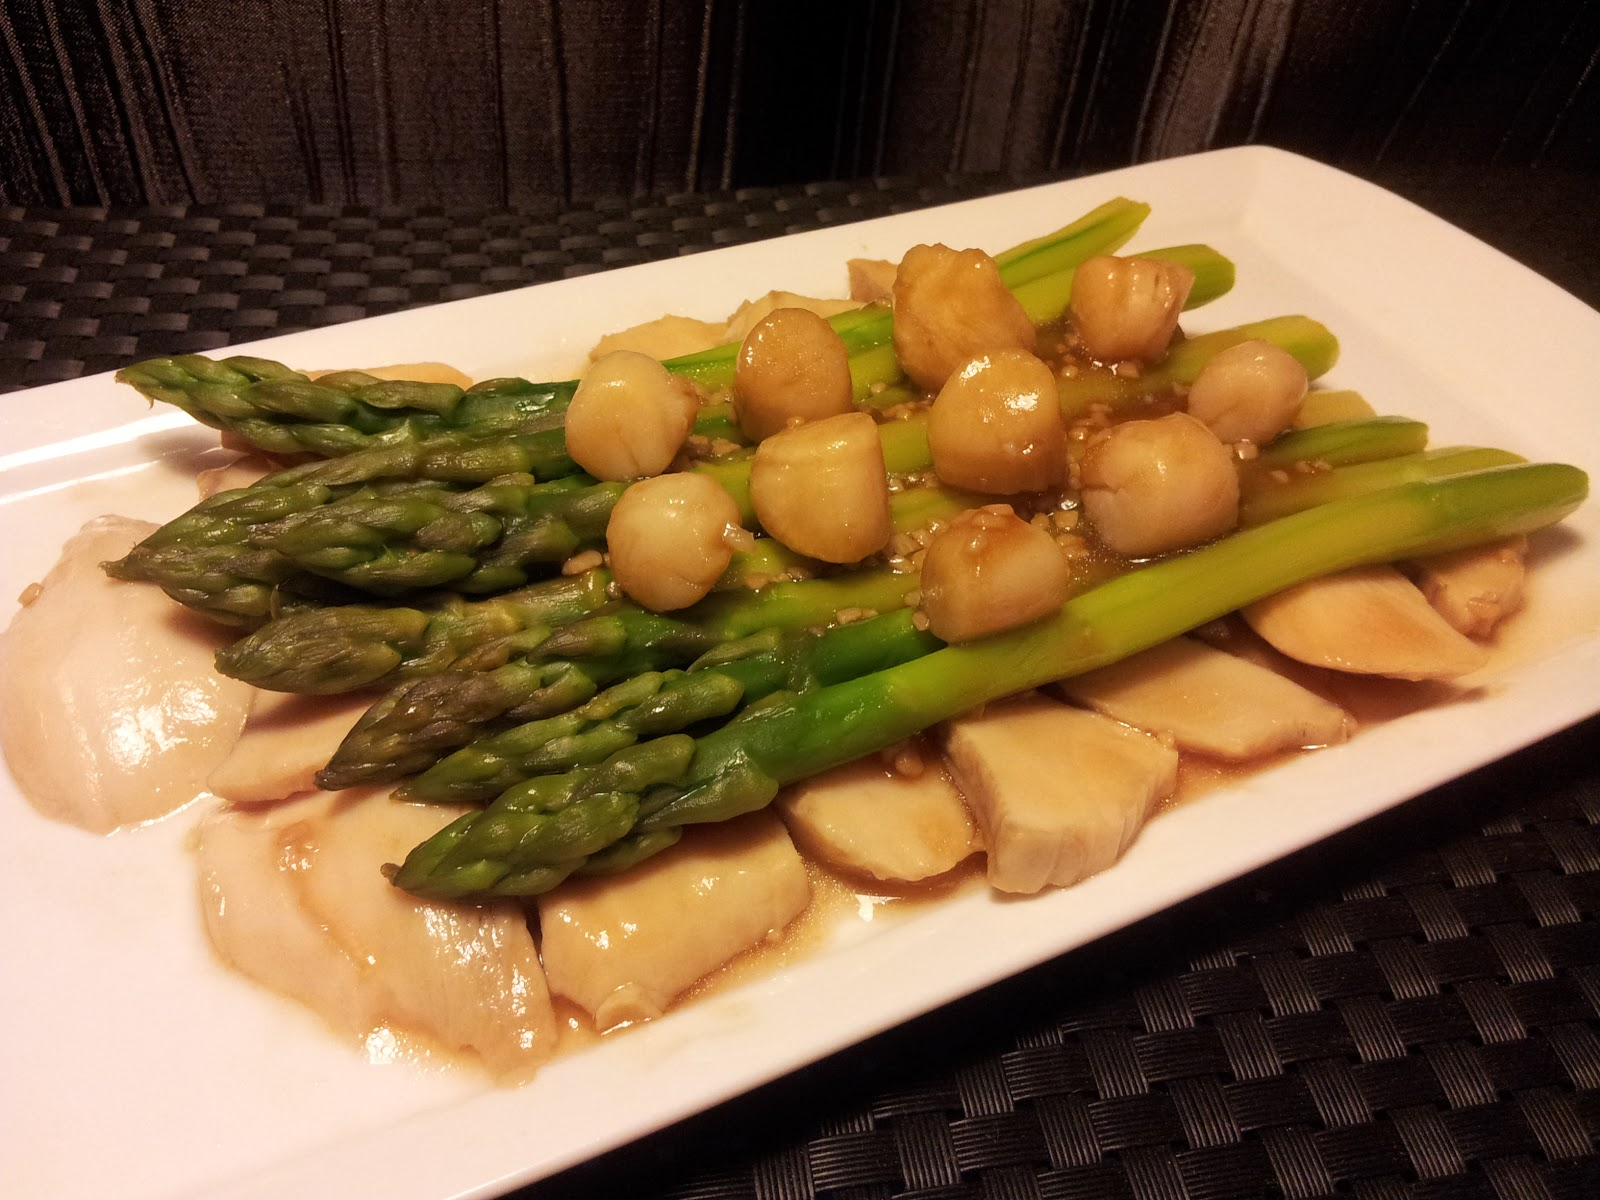 Scallop and Asparagus Stir-Fry picture